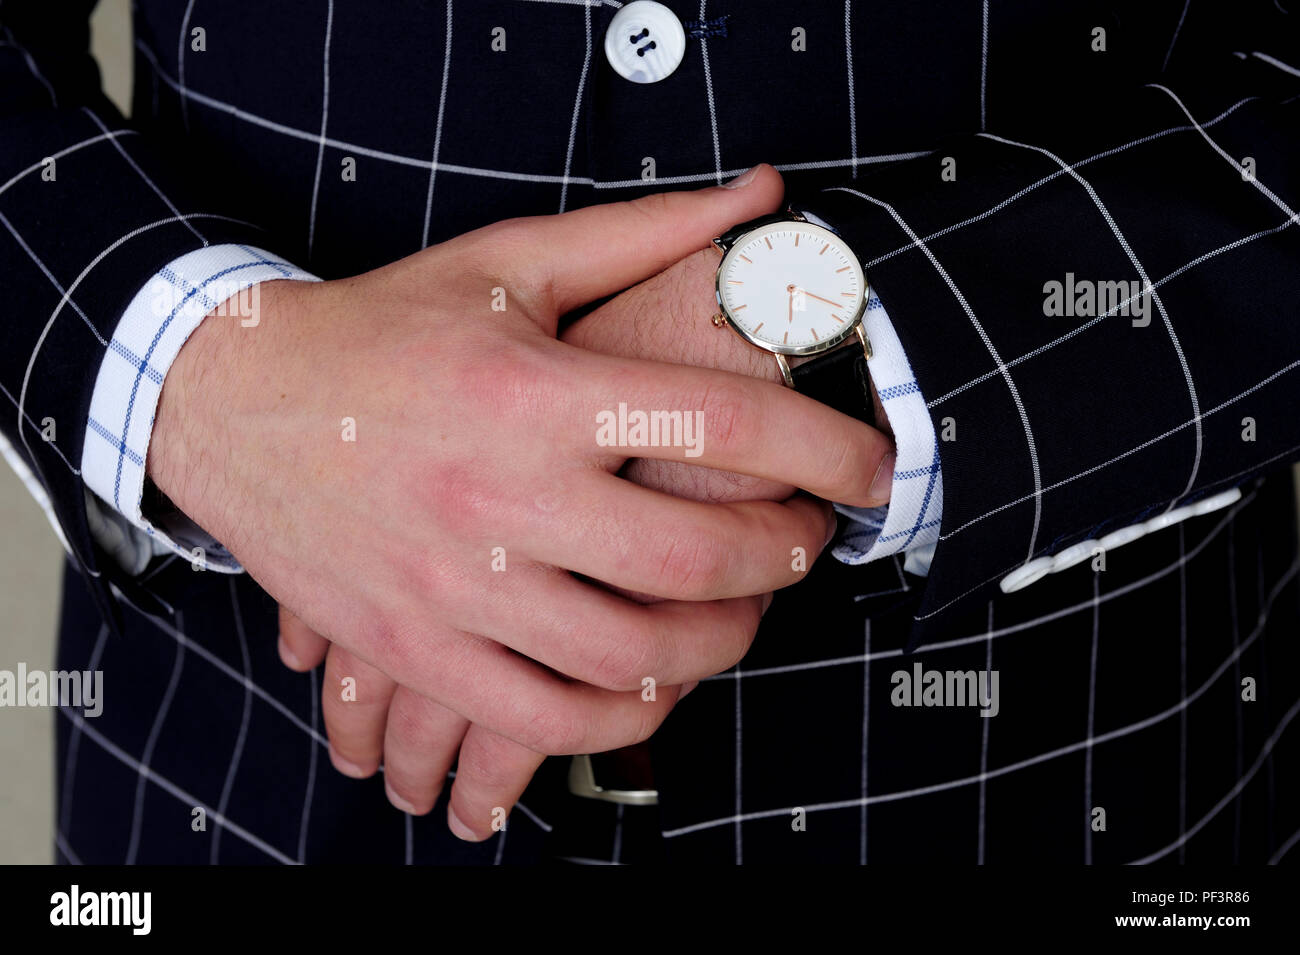 hands, man, time, waiting, watch, classic, hands, lifestyle, cuffs, curiosity, body language, - Stock Image